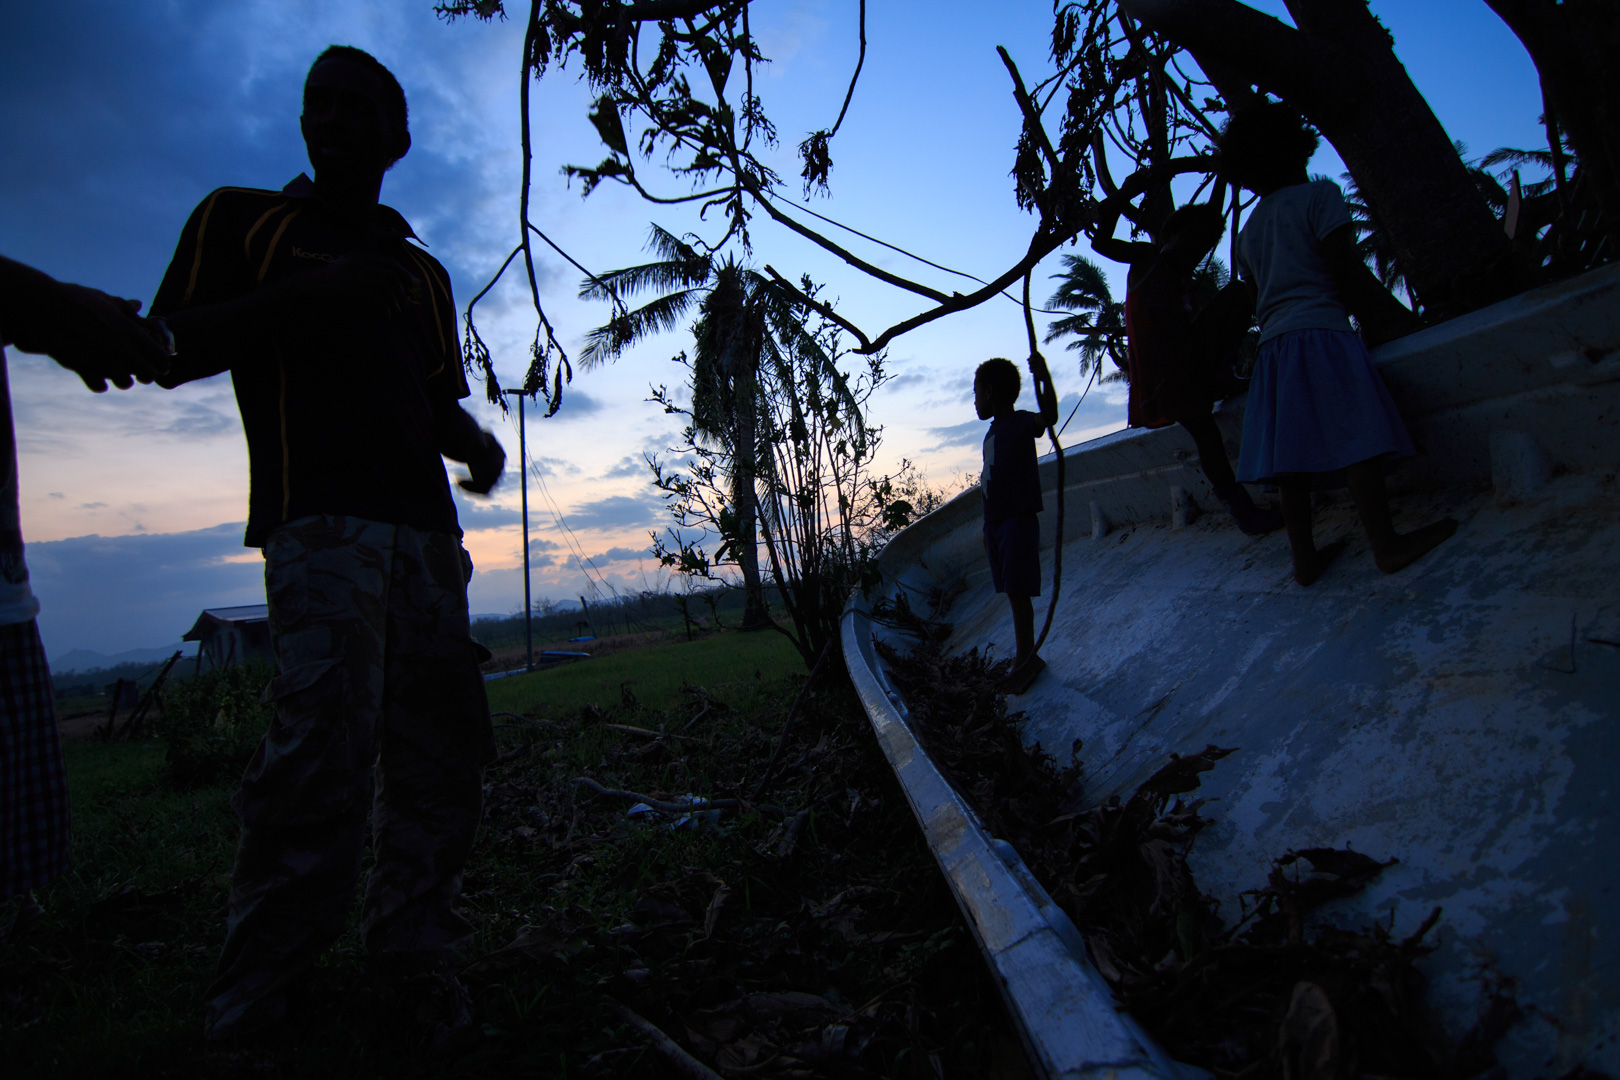 A man from Drau-ni-ivi Village in Rakiraki gestures as children play in the hull of an overturned boat behind him after Cyclone Winston swept through the area and made landfall in Fiji on February 20, 2016.